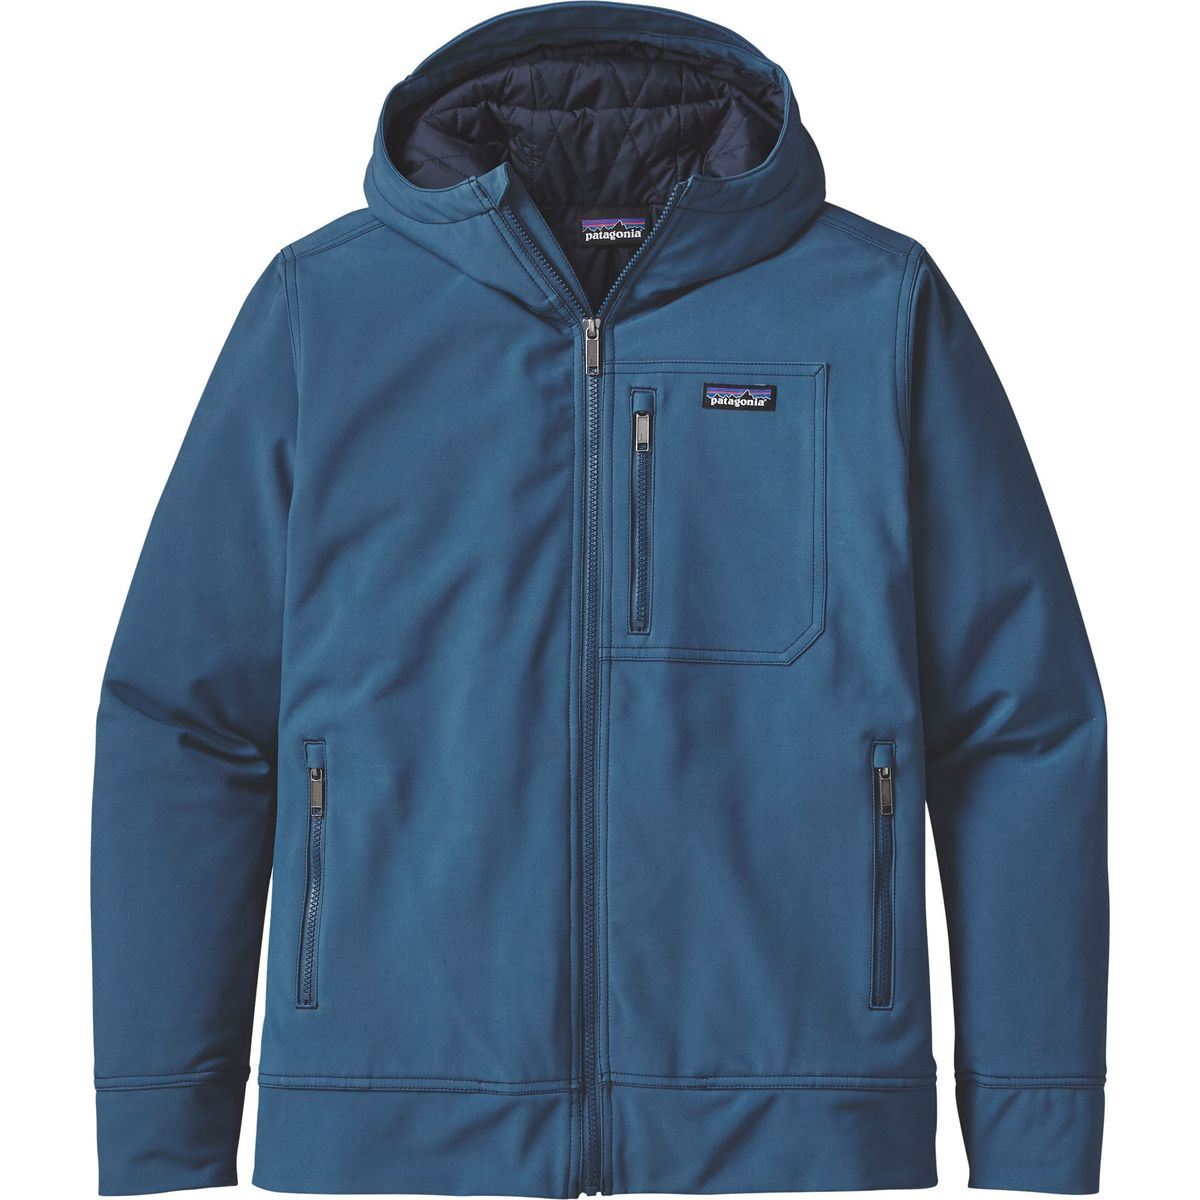 Patagonia Insulated Sidesend Hooded Jacket - Men